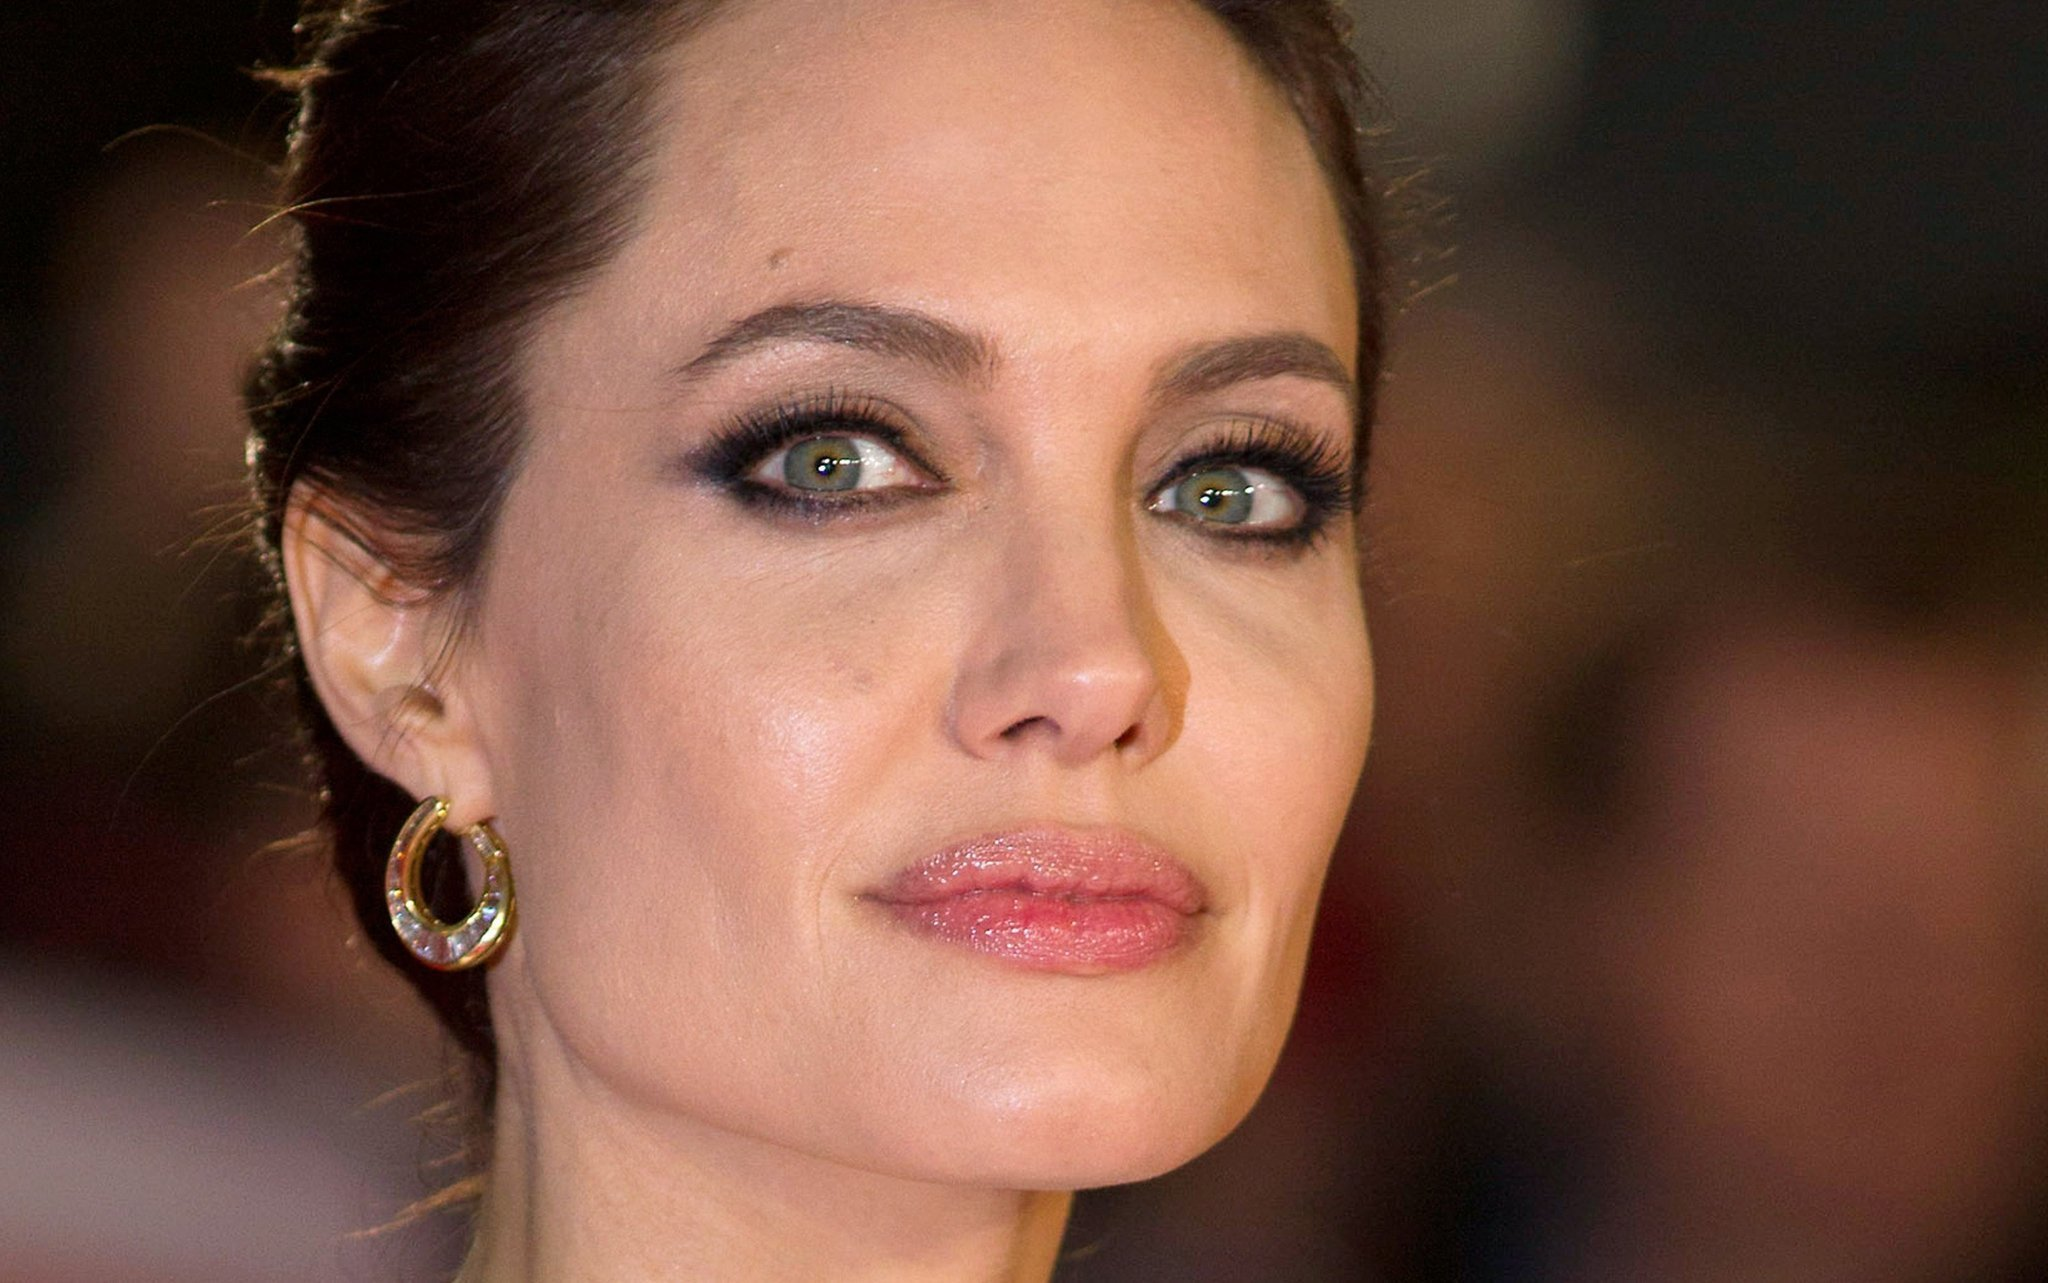 Angelina Jolie News: Angelina Jolie Talks About 'difficult' Split From Brad